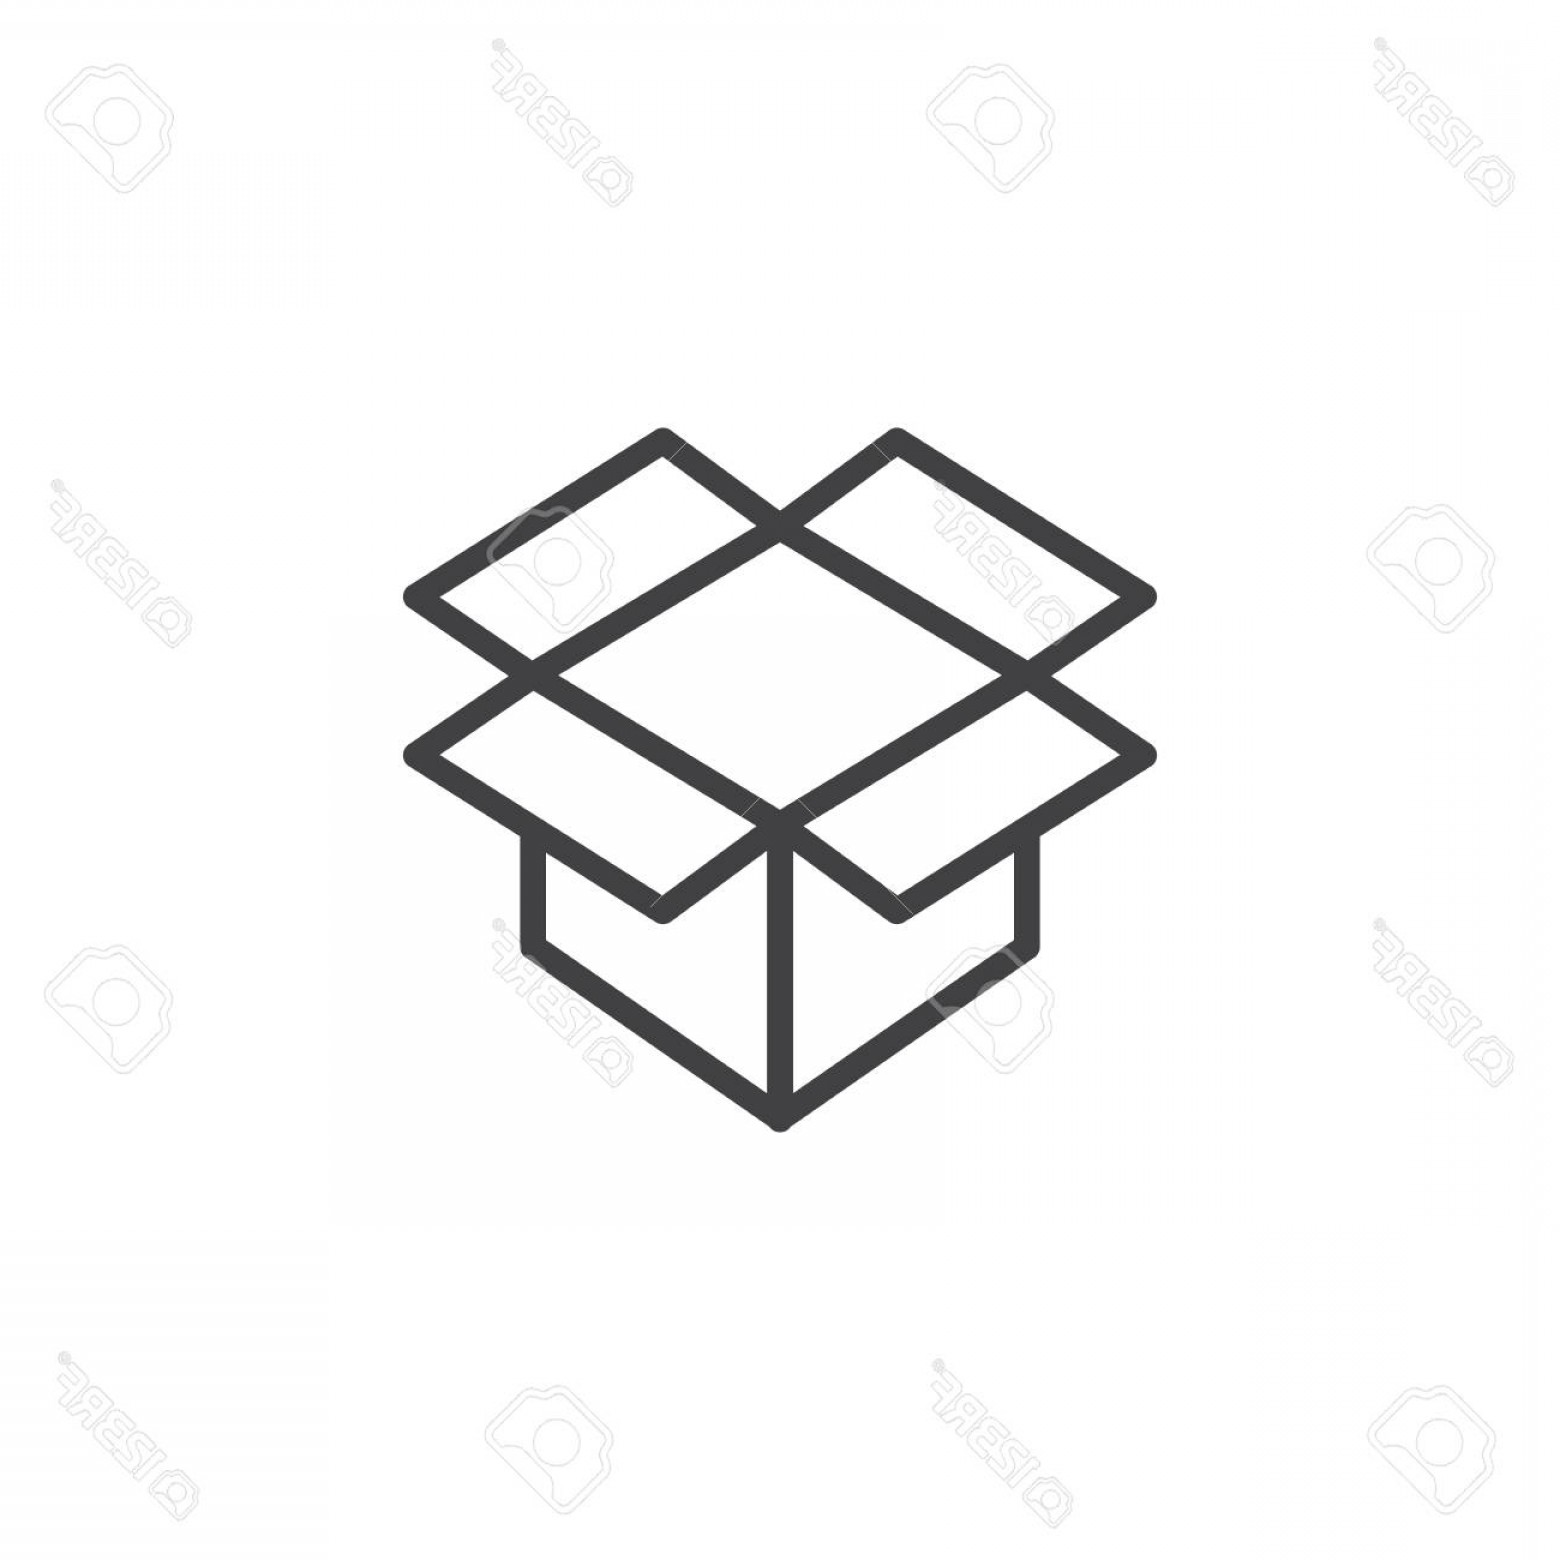 Box Outline Vector: Photostock Vector Open Parcel Box Line Icon Outline Vector Sign Linear Style Pictogram Isolated On White Packaging Car